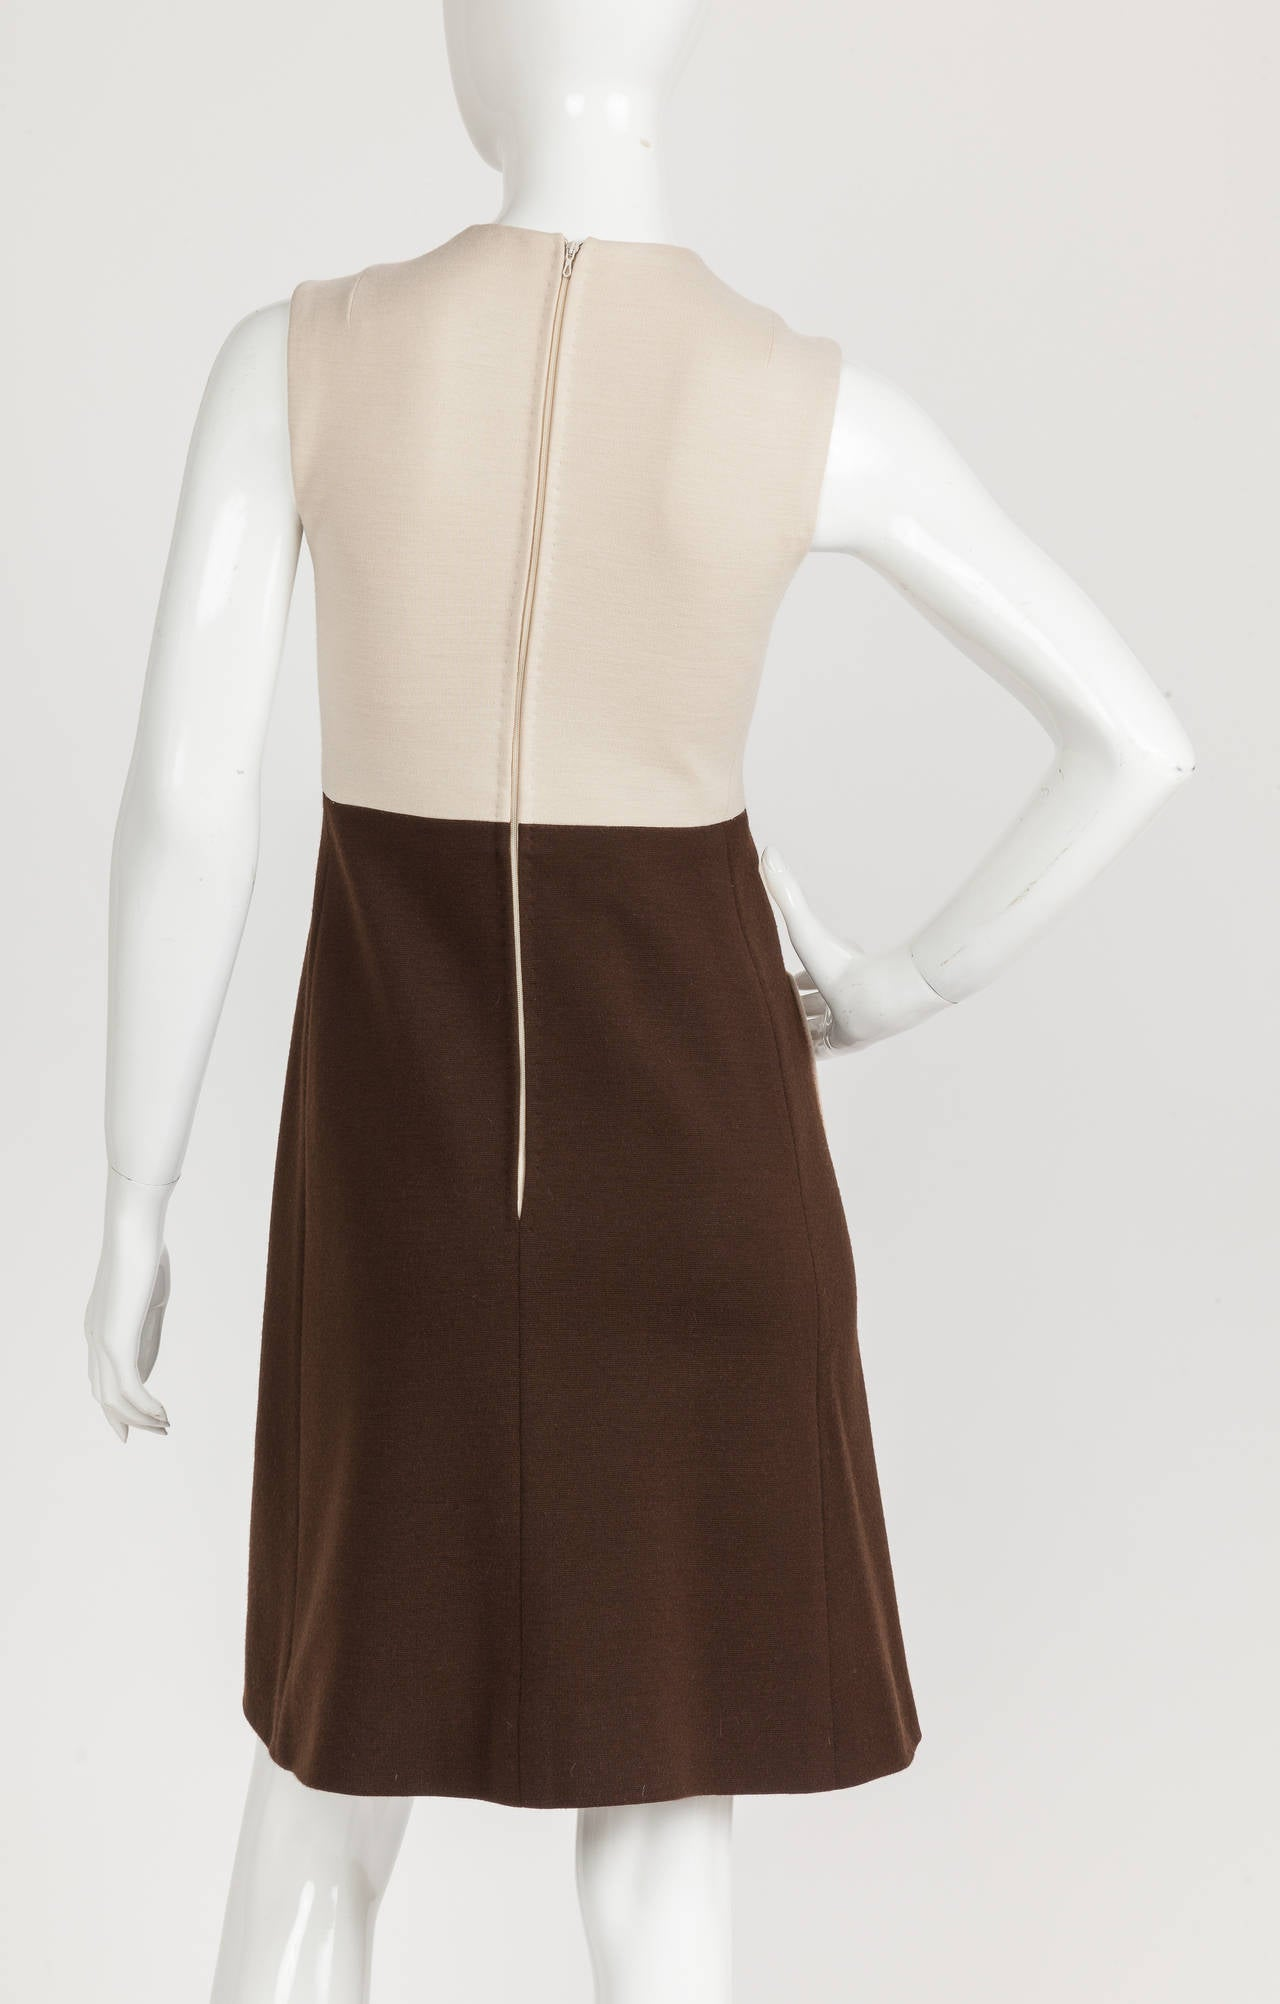 1970s Pierre Cardin Mod Graphic Jersey Wool Day Dress For Sale 1